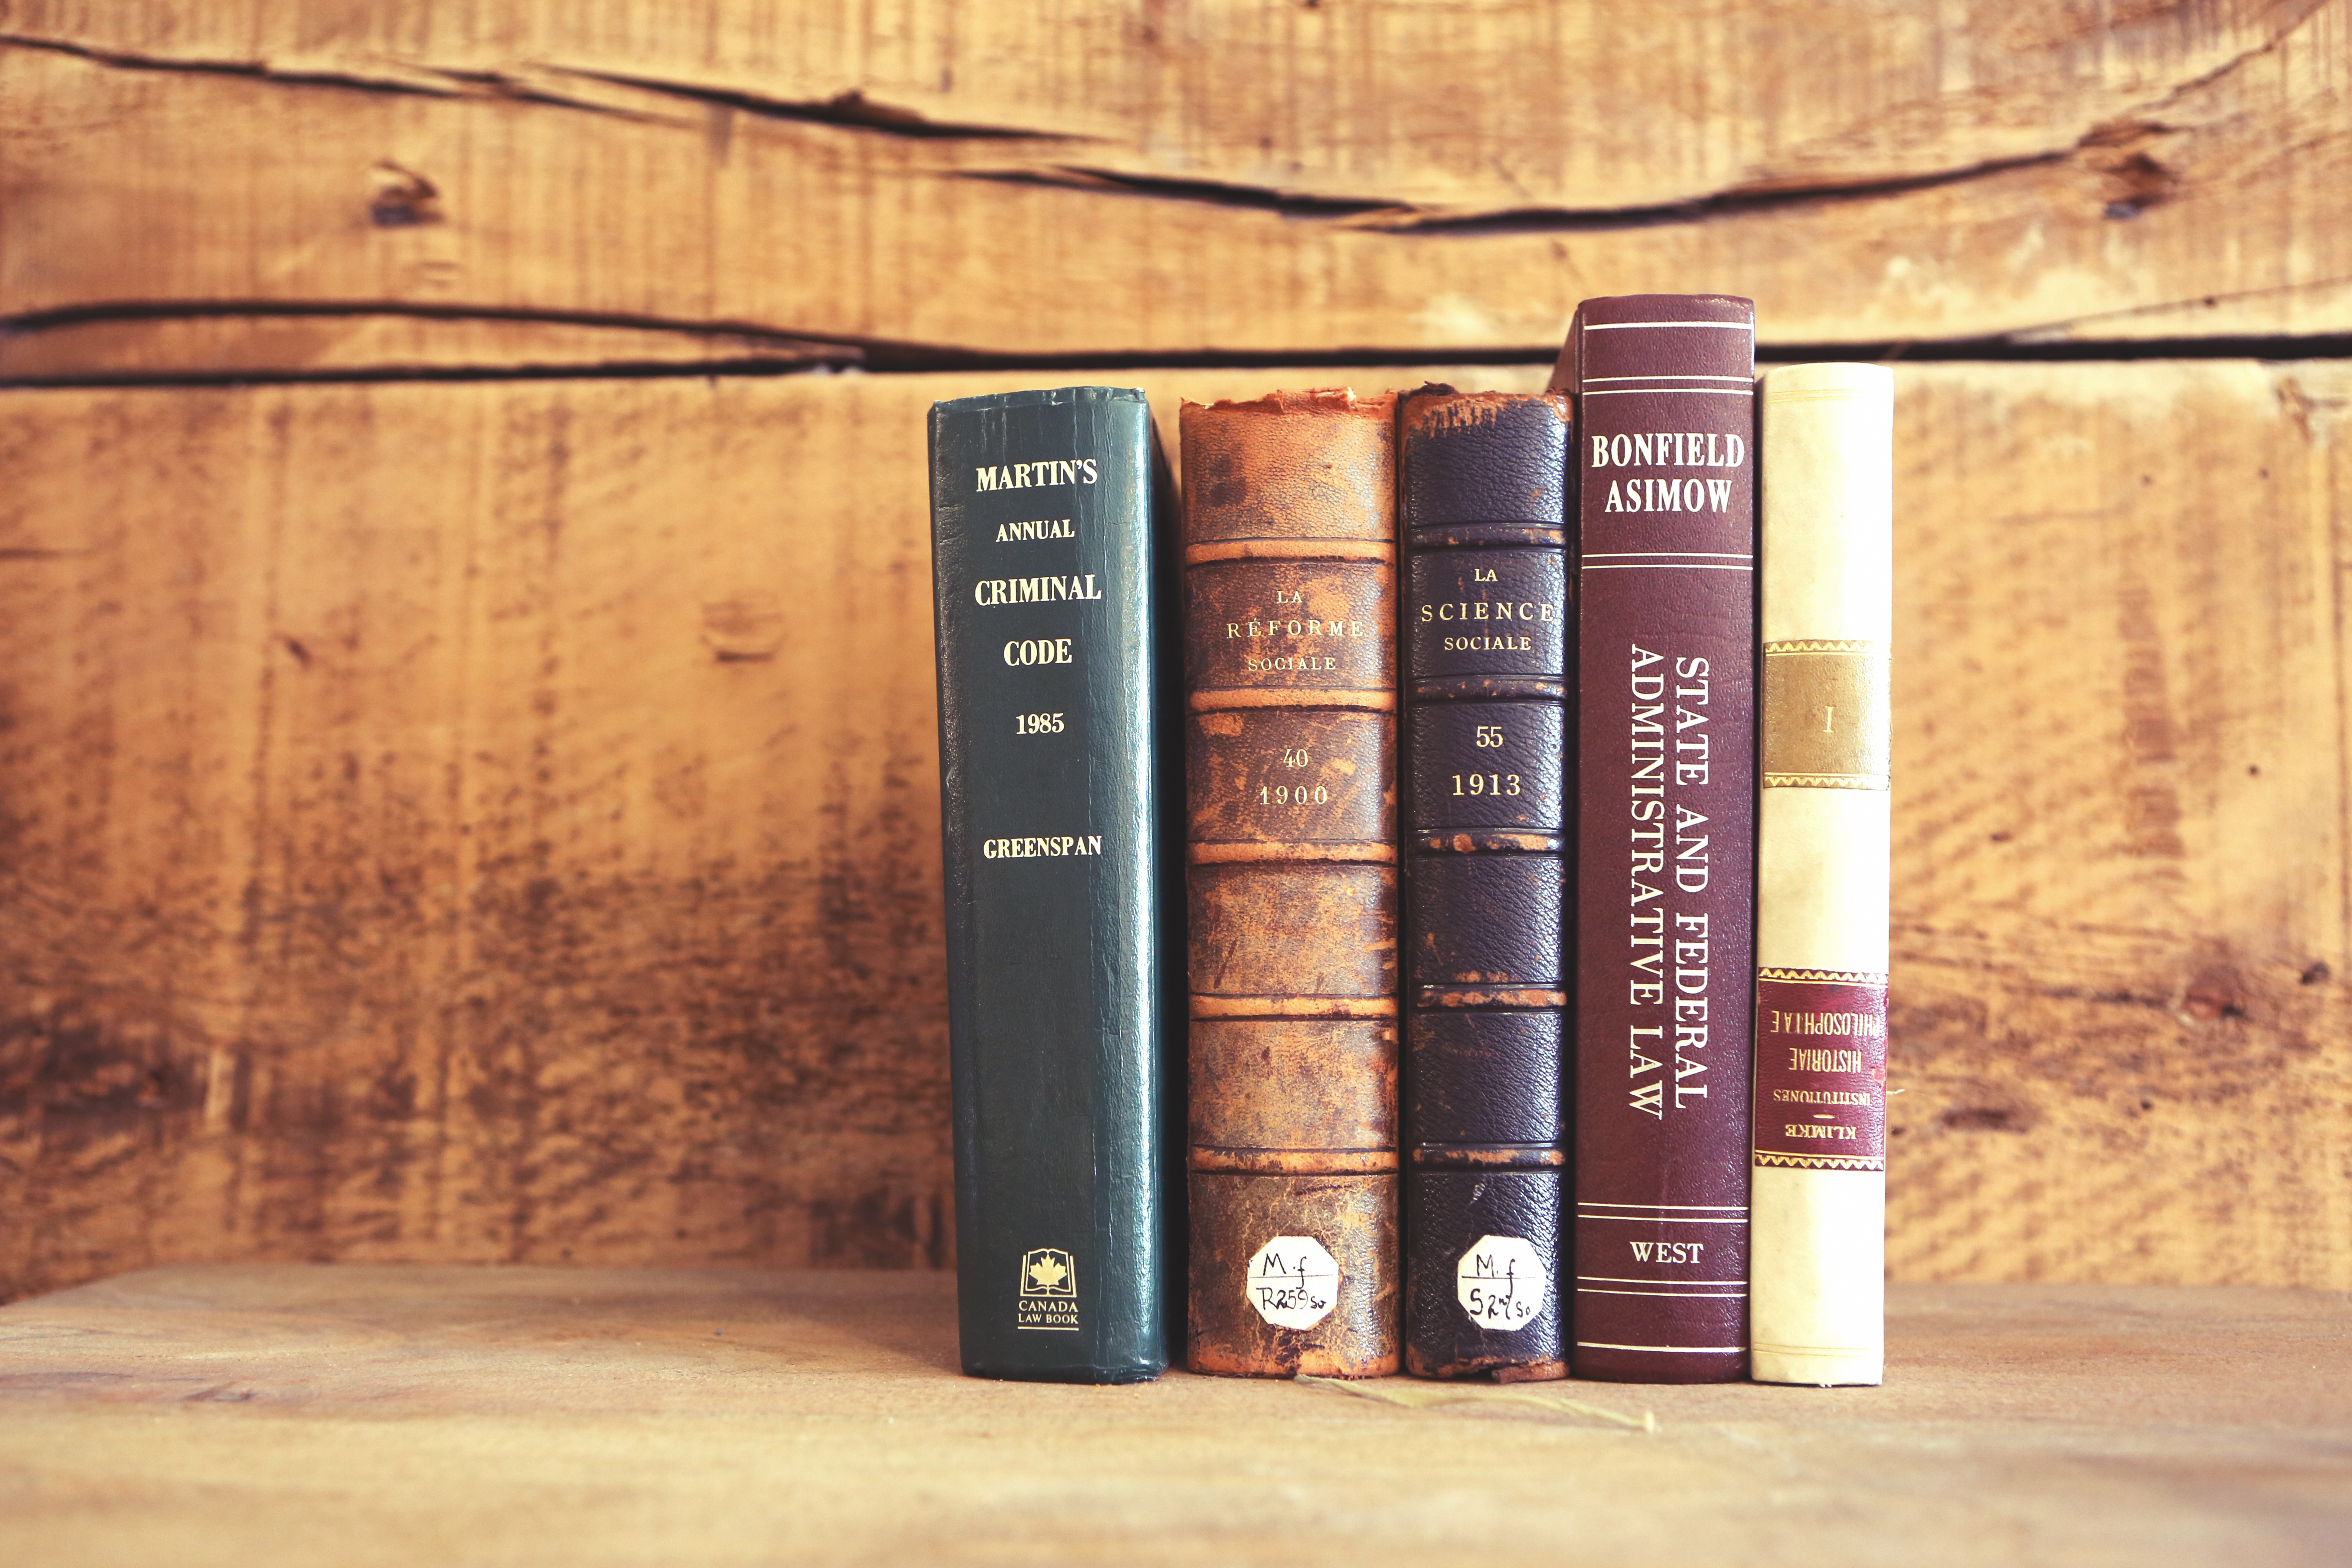 2015-04-Life-of-Pix-free-stock-old-books-wooden-shelves-leeroy